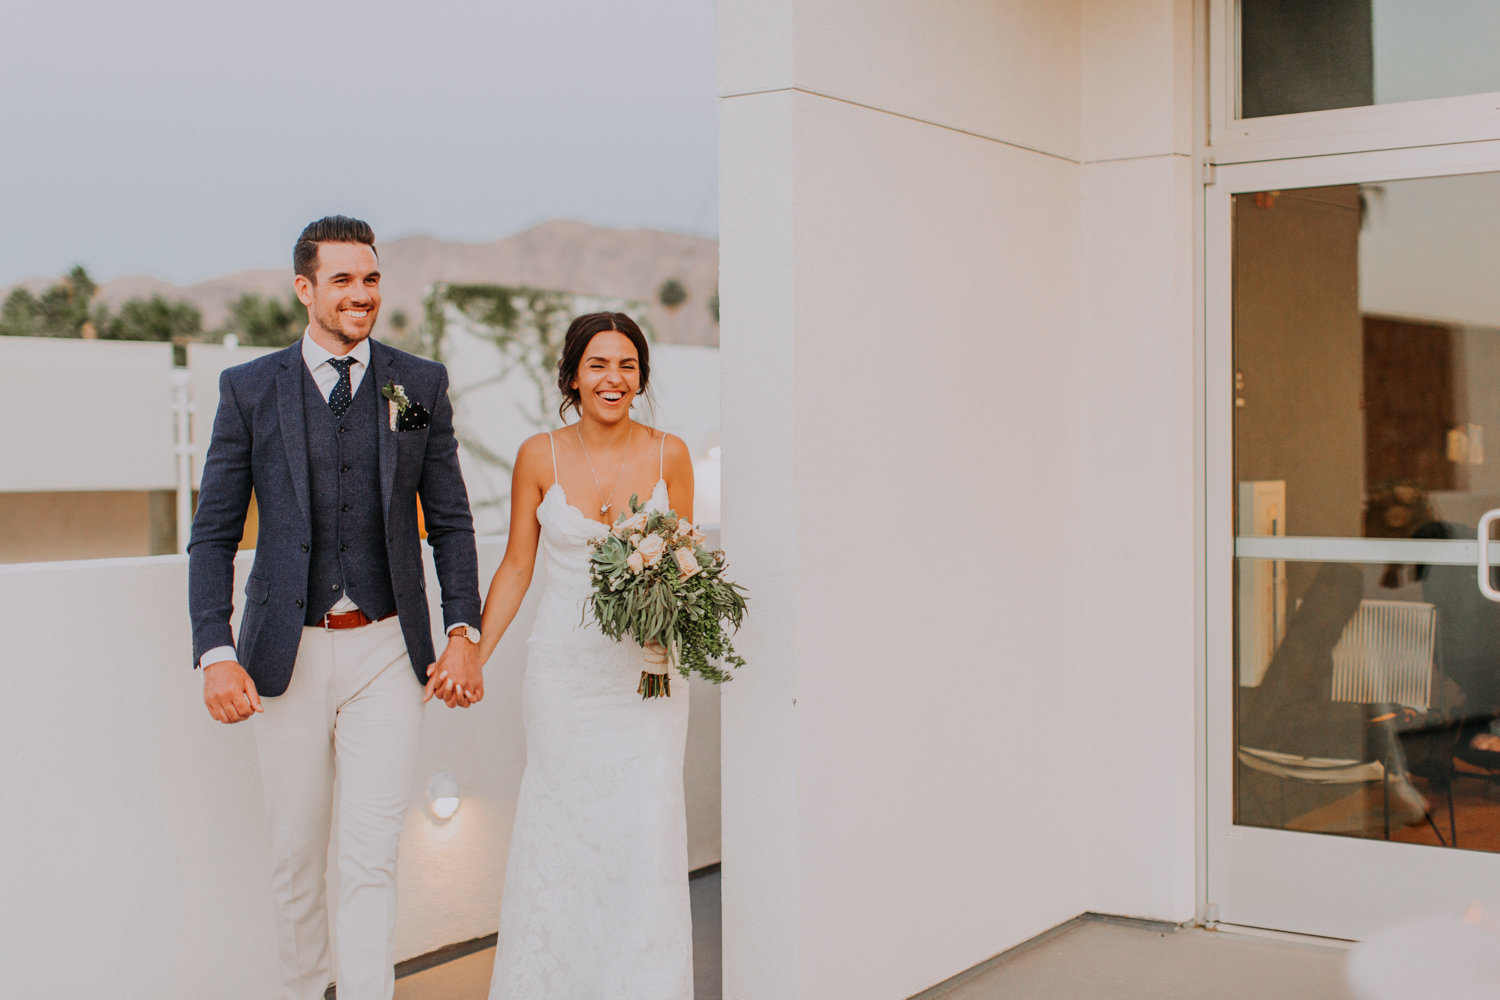 Brianna Broyles_Palm Springs Wedding Photographer_Ace Hotel Wedding_Ace Hotel Palm Springs-81